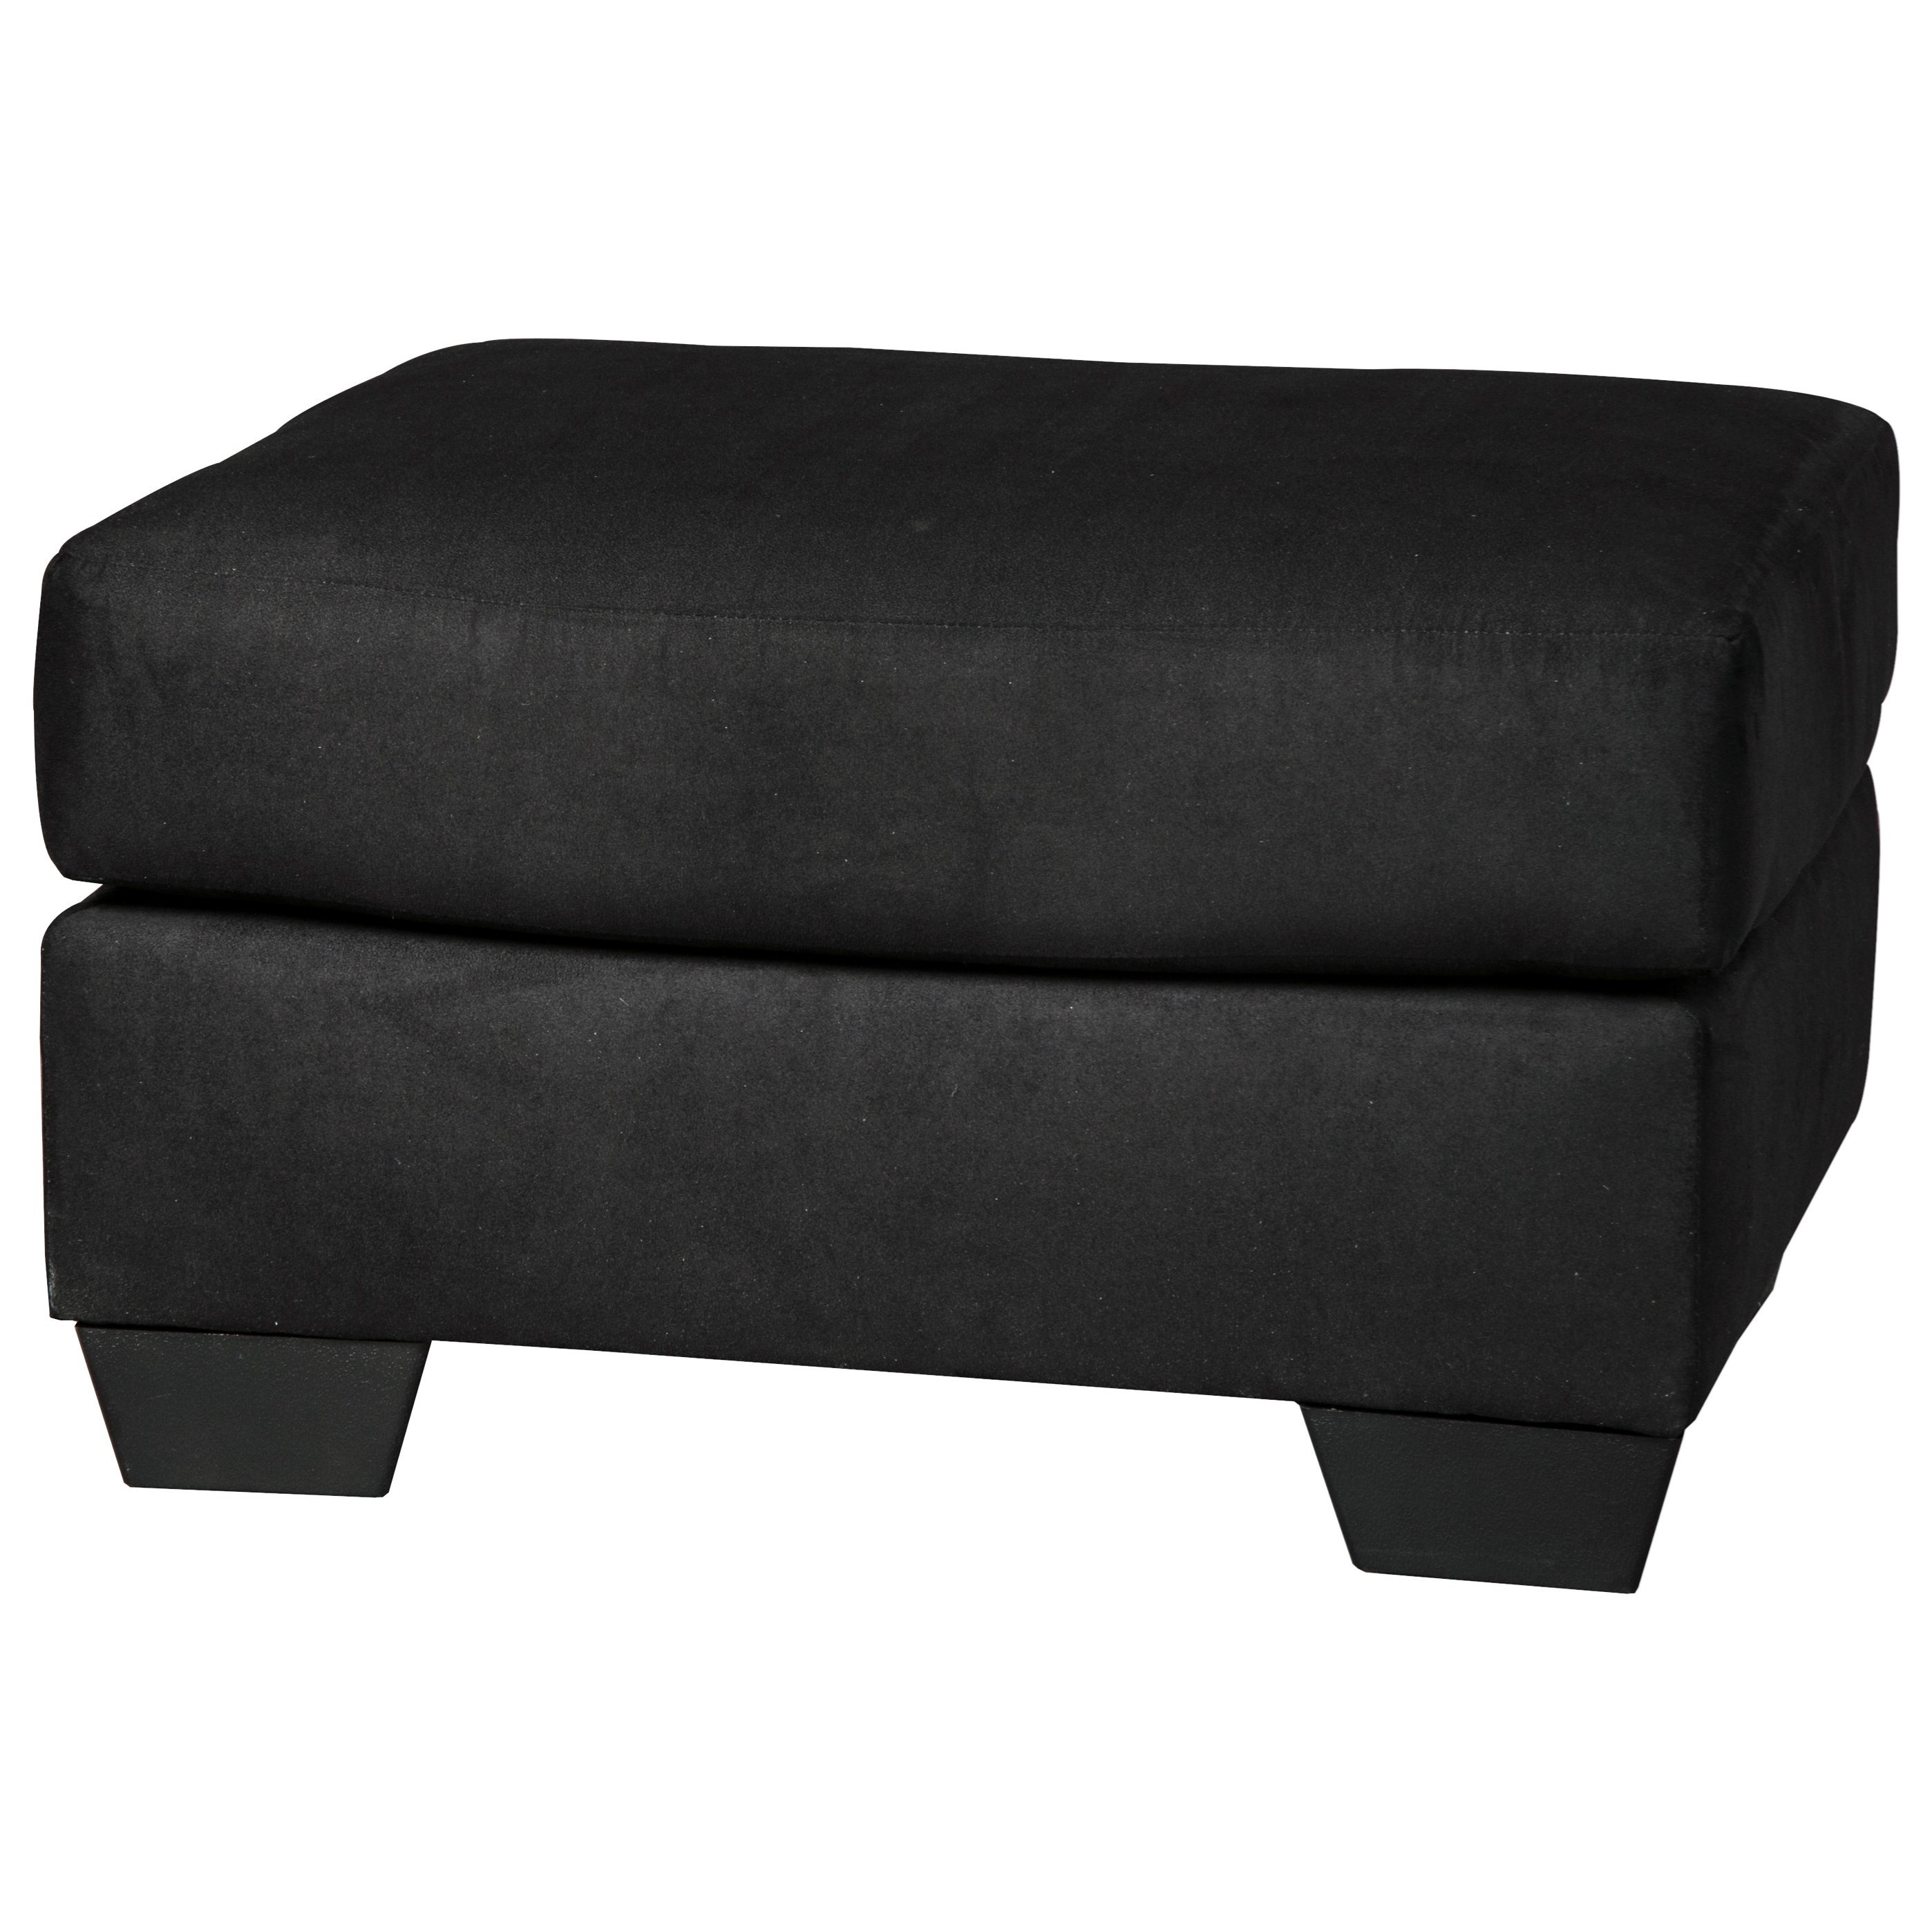 Darcy - Black Ottoman by Ashley (Signature Design) at Johnny Janosik